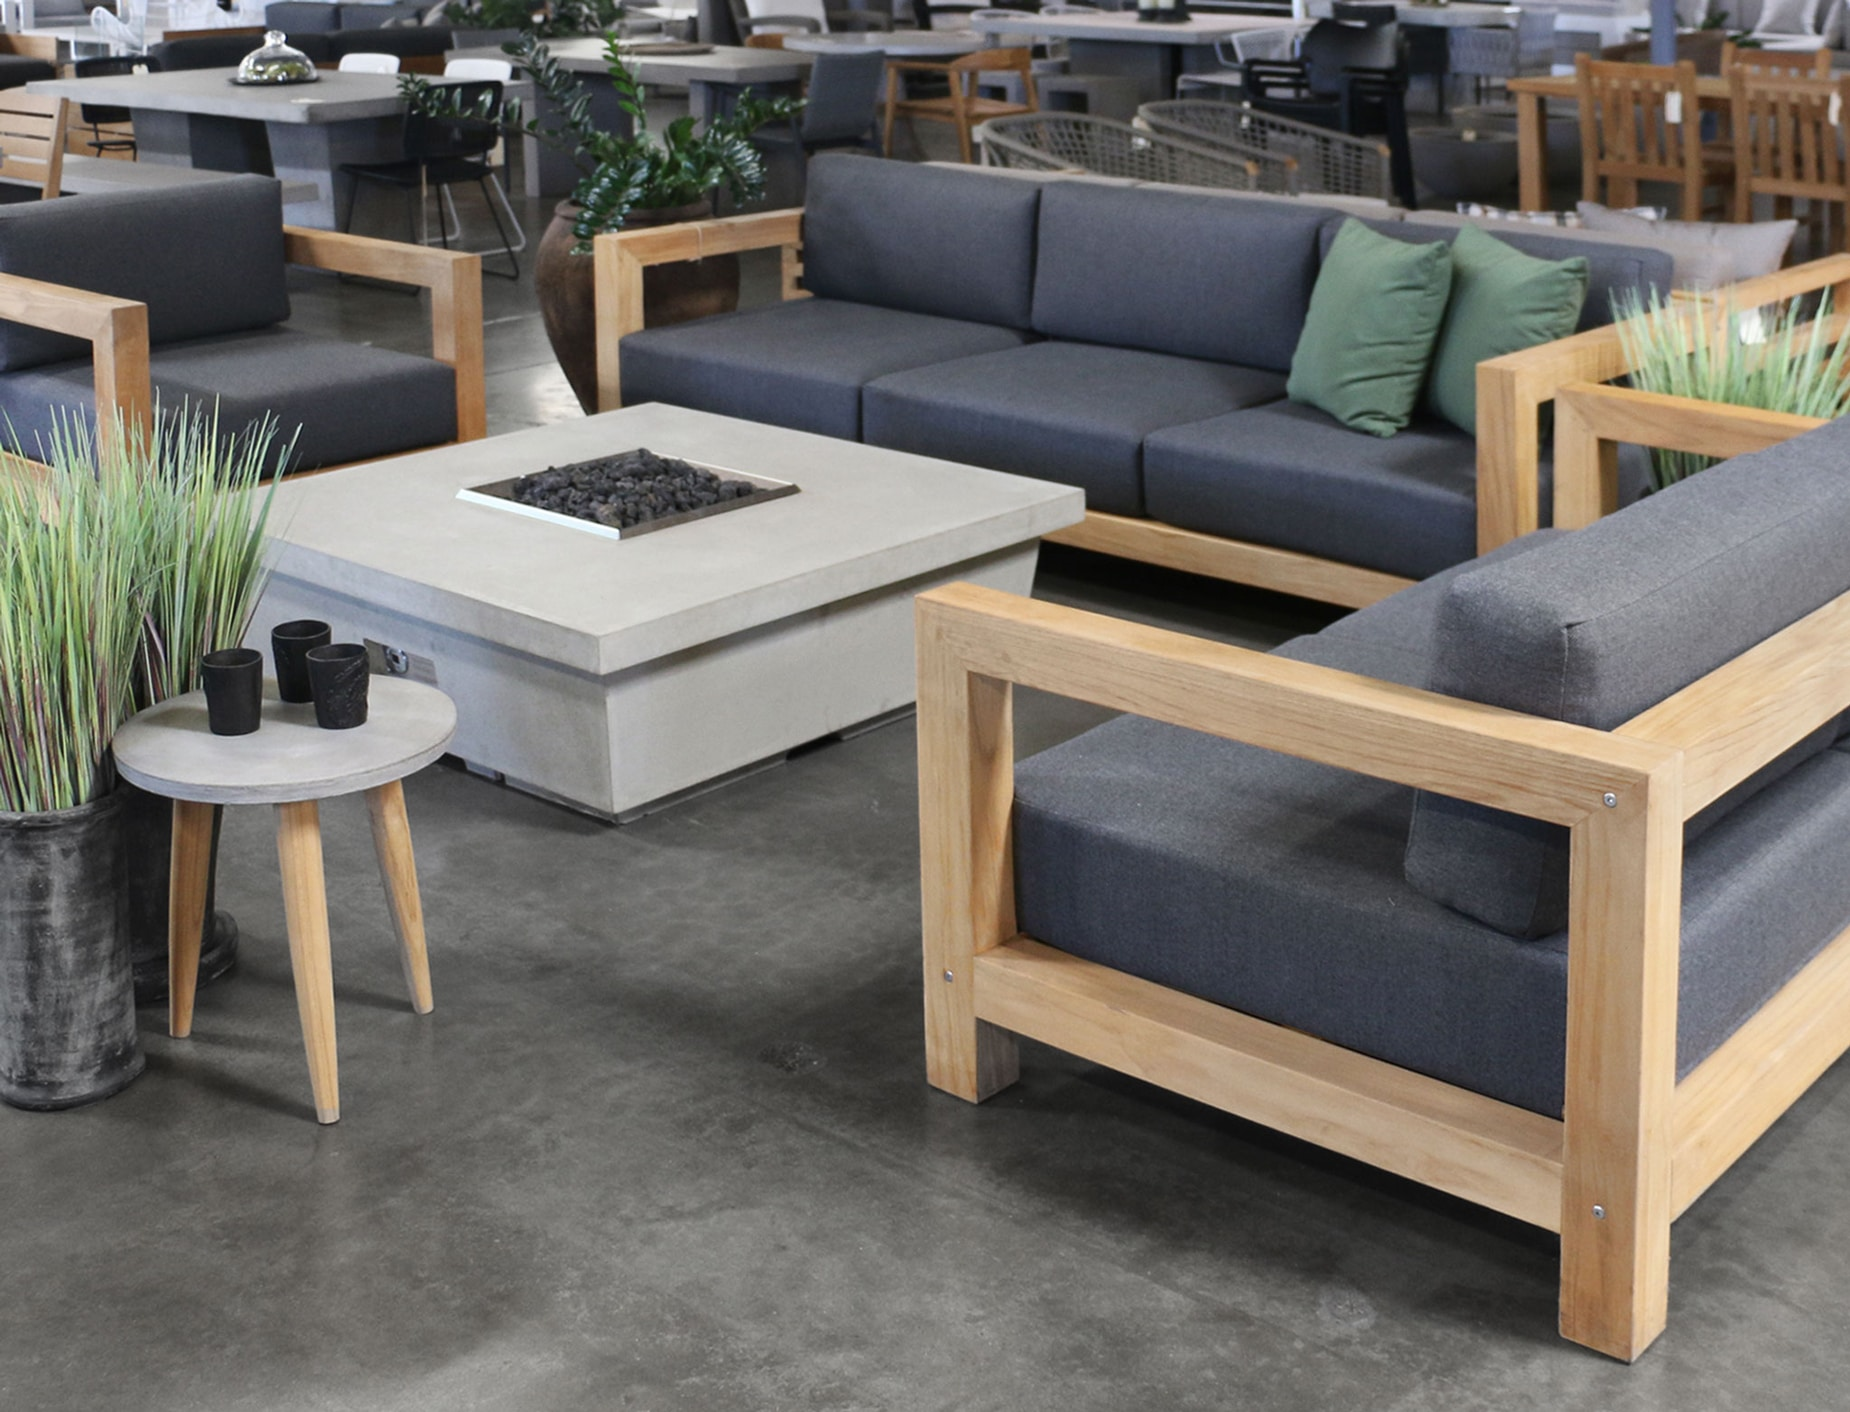 Ibiza Teak Furniture Collection At The Teak Warehouse Showroom